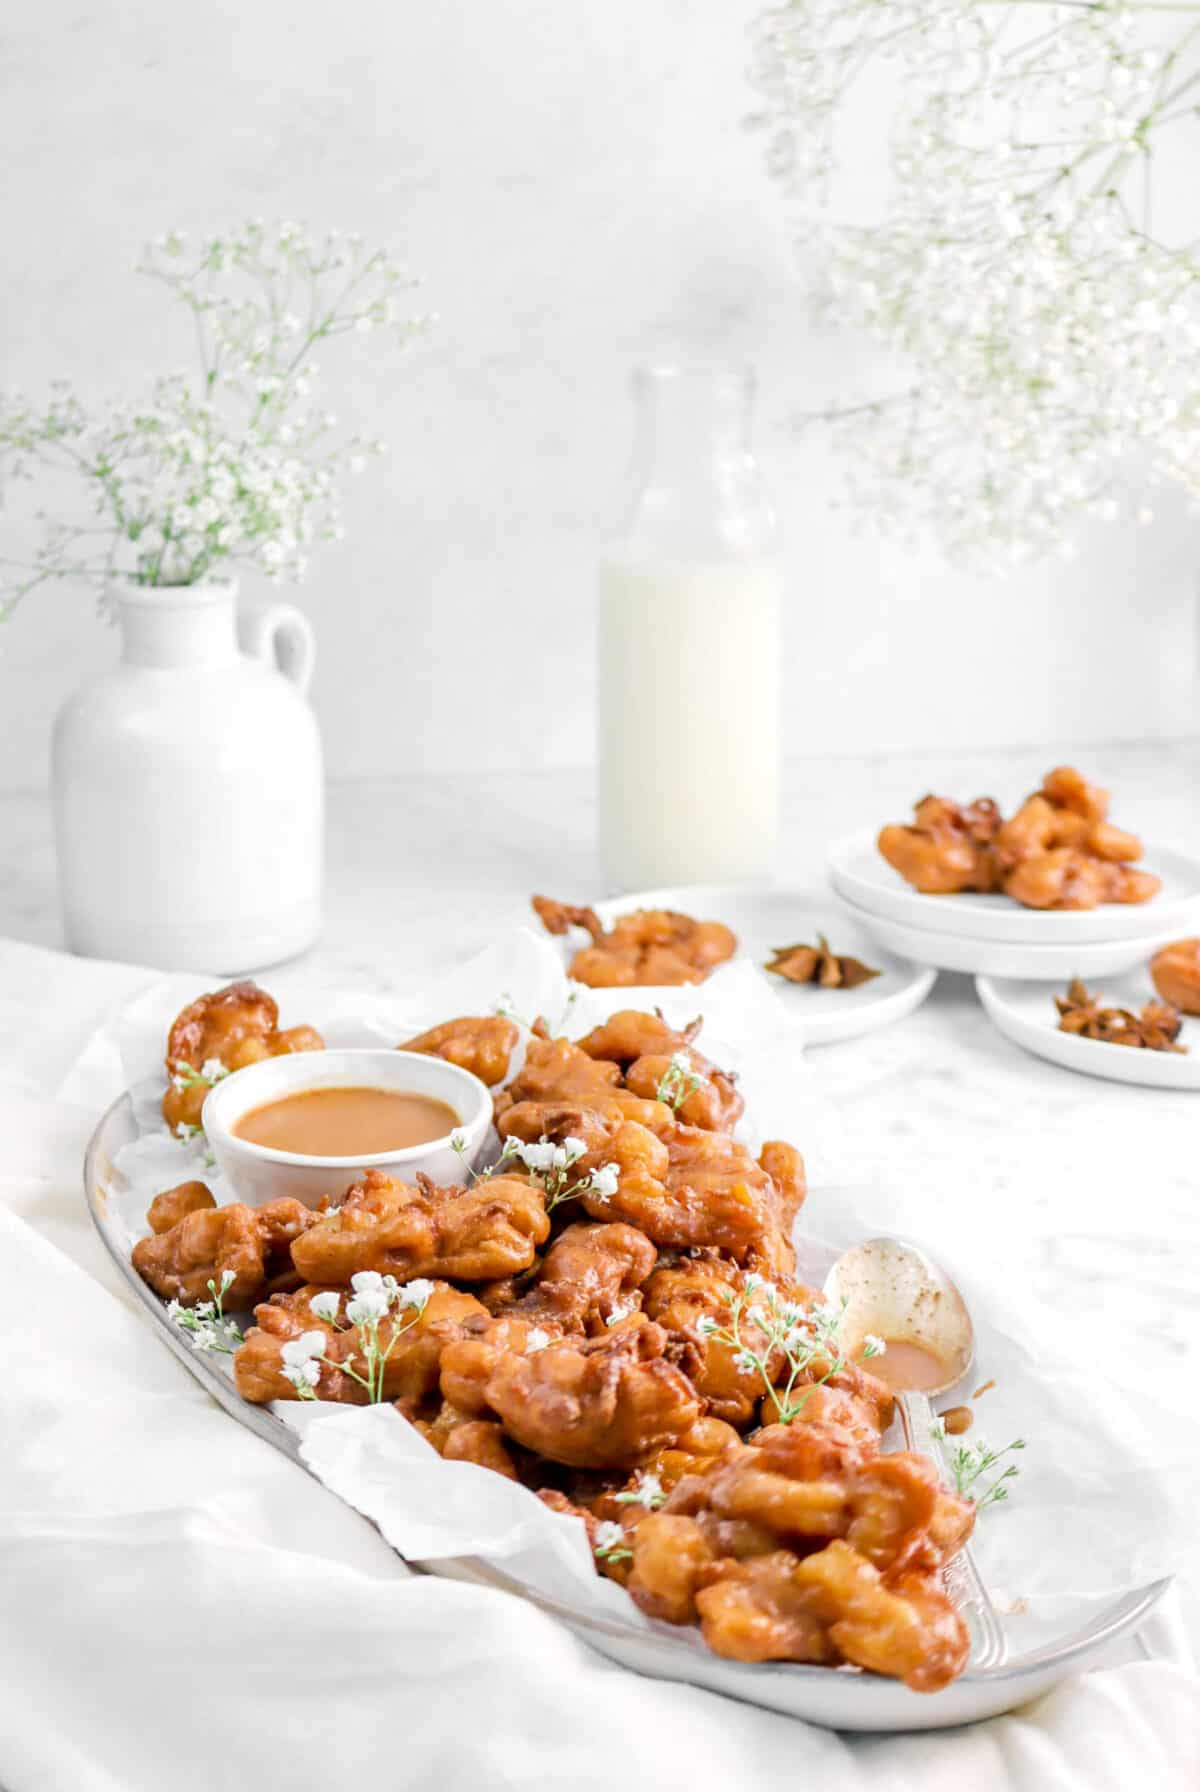 plate of apple pie fritters, with flowers, a spoon, and a glass of milk